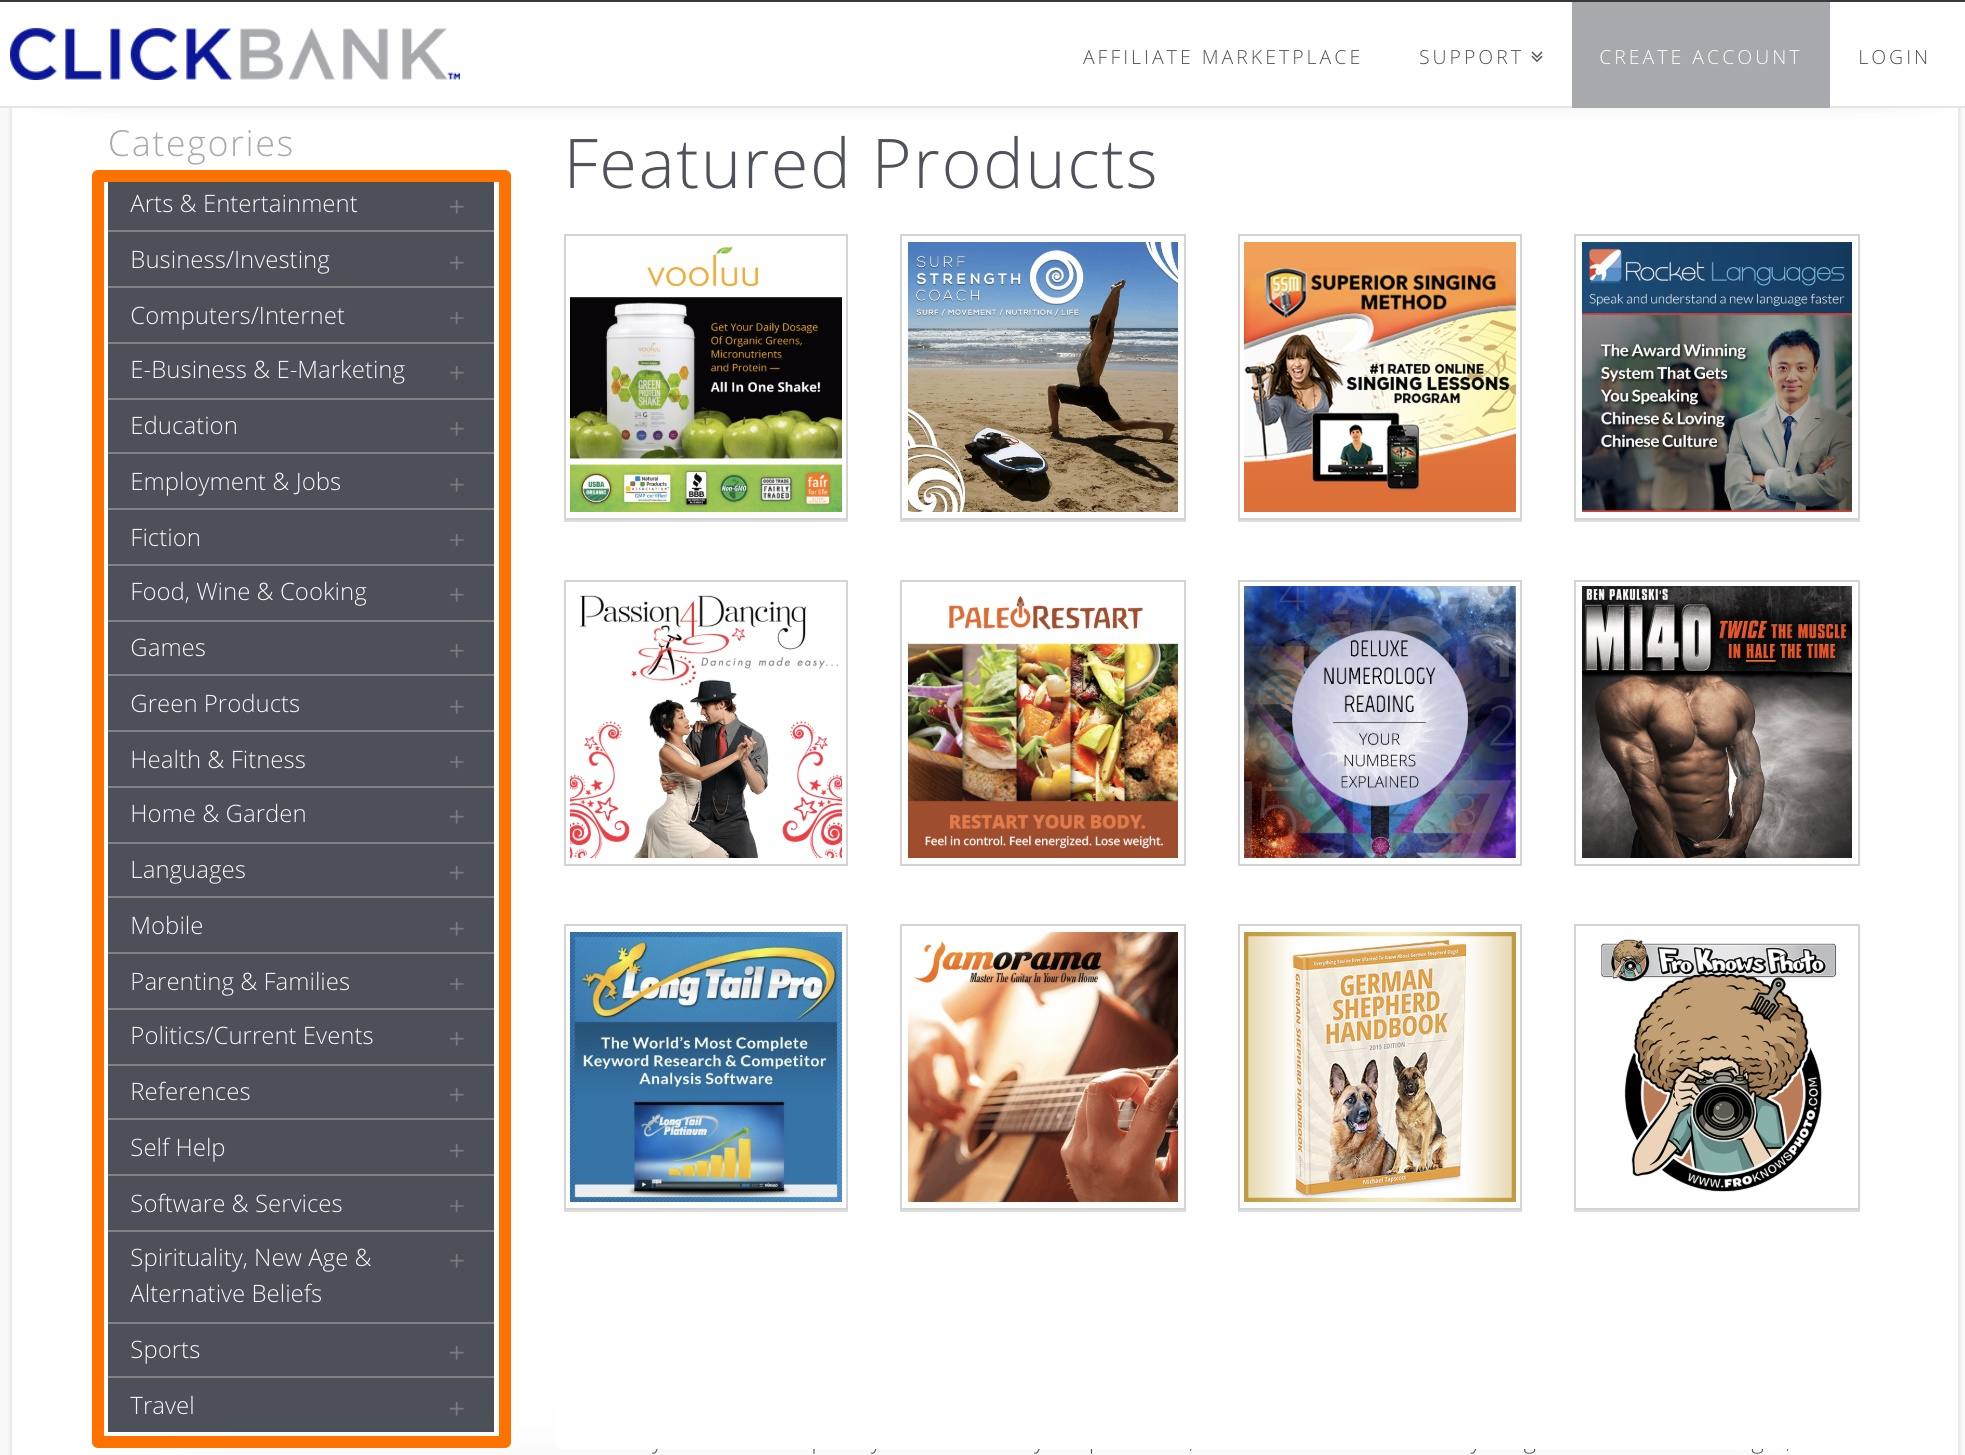 the clickbank marketplace